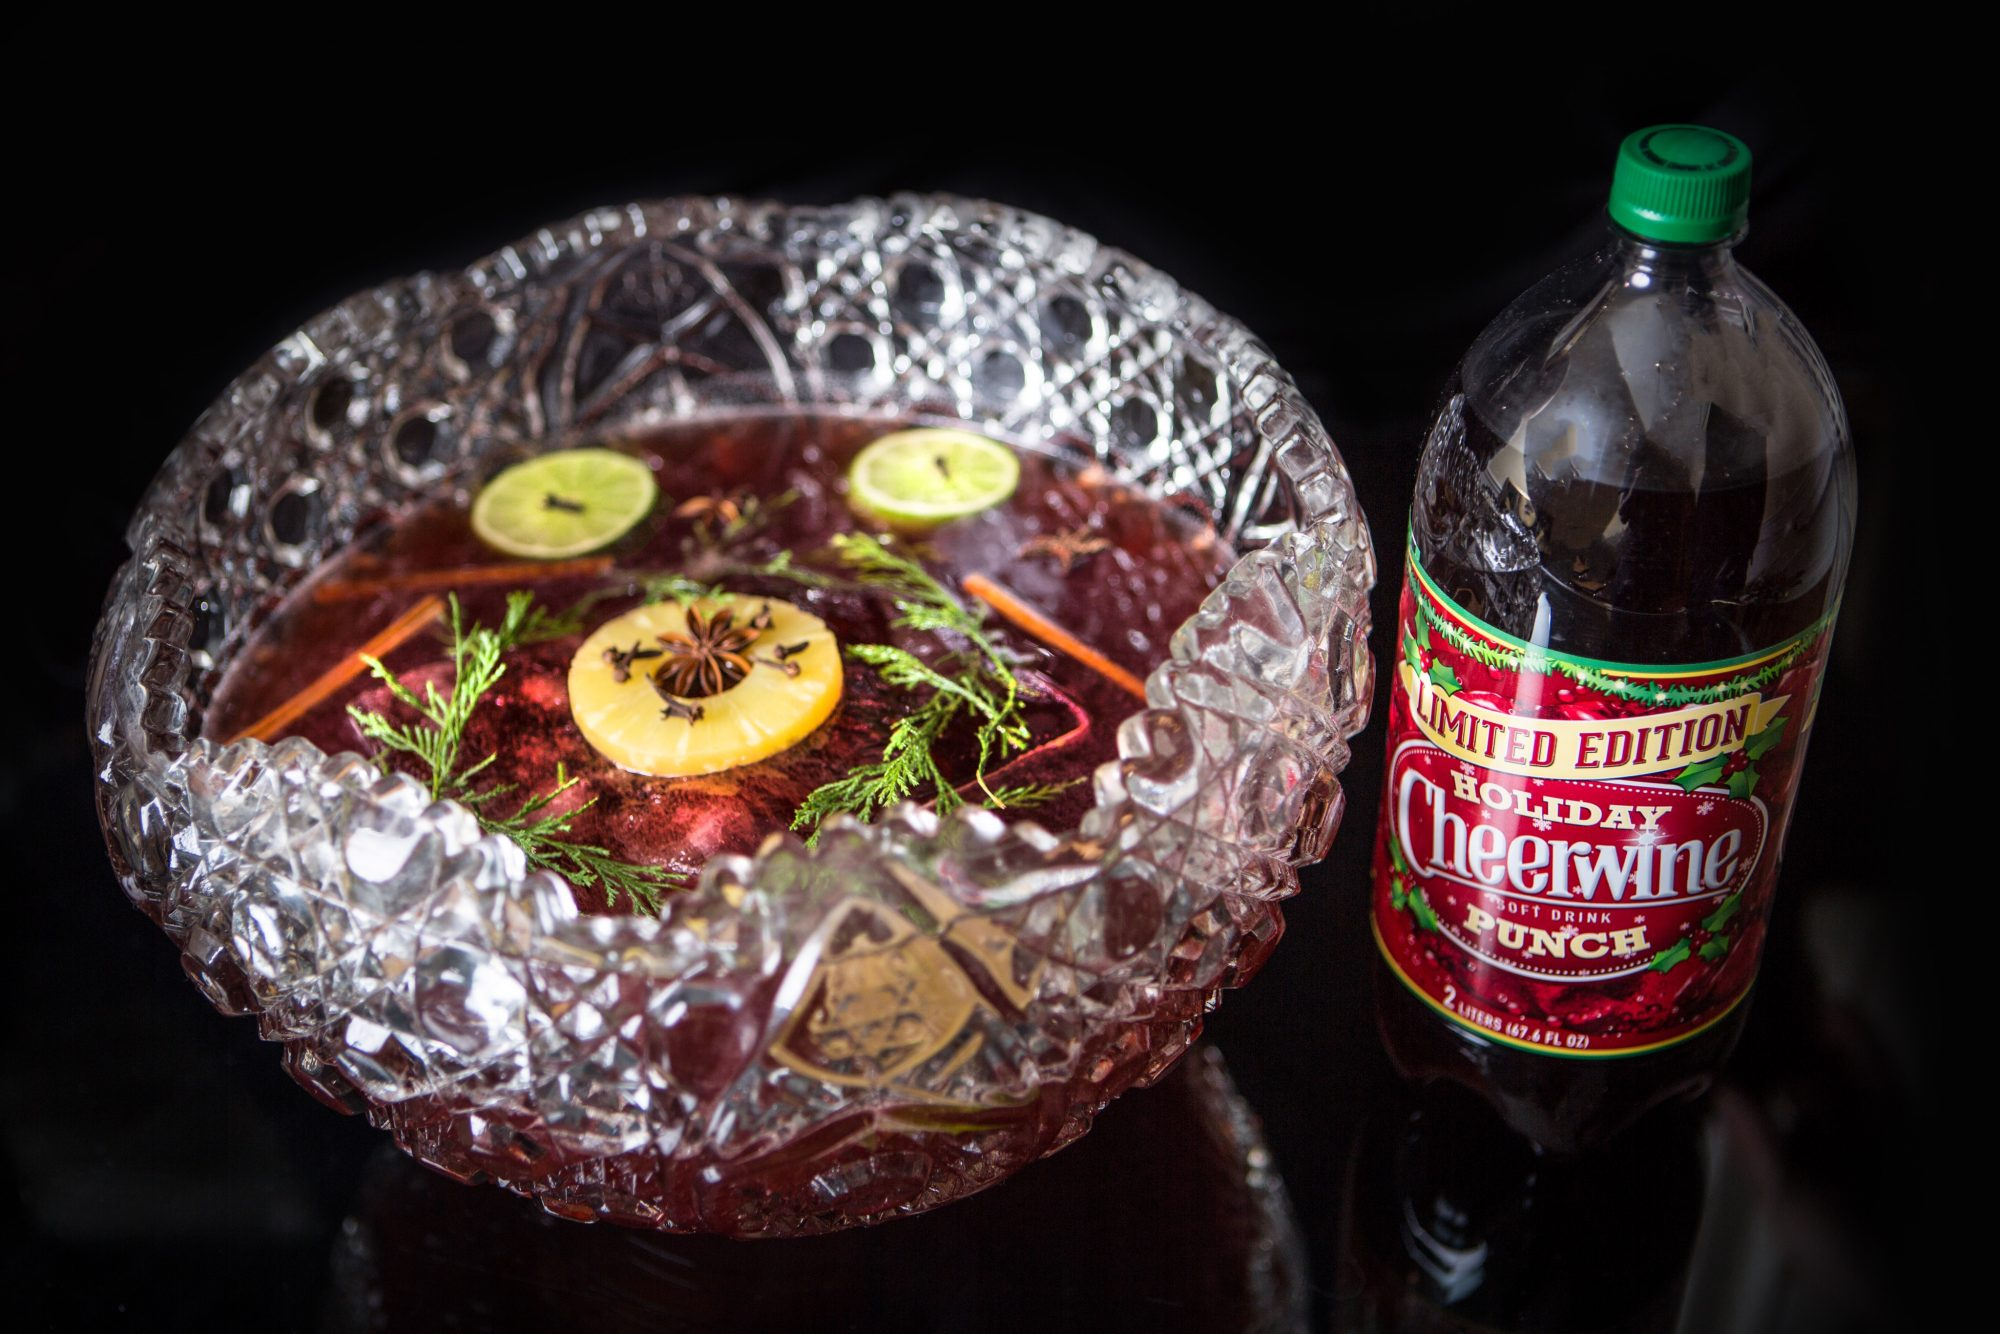 Cheerwine Holiday Punch Bob Peters